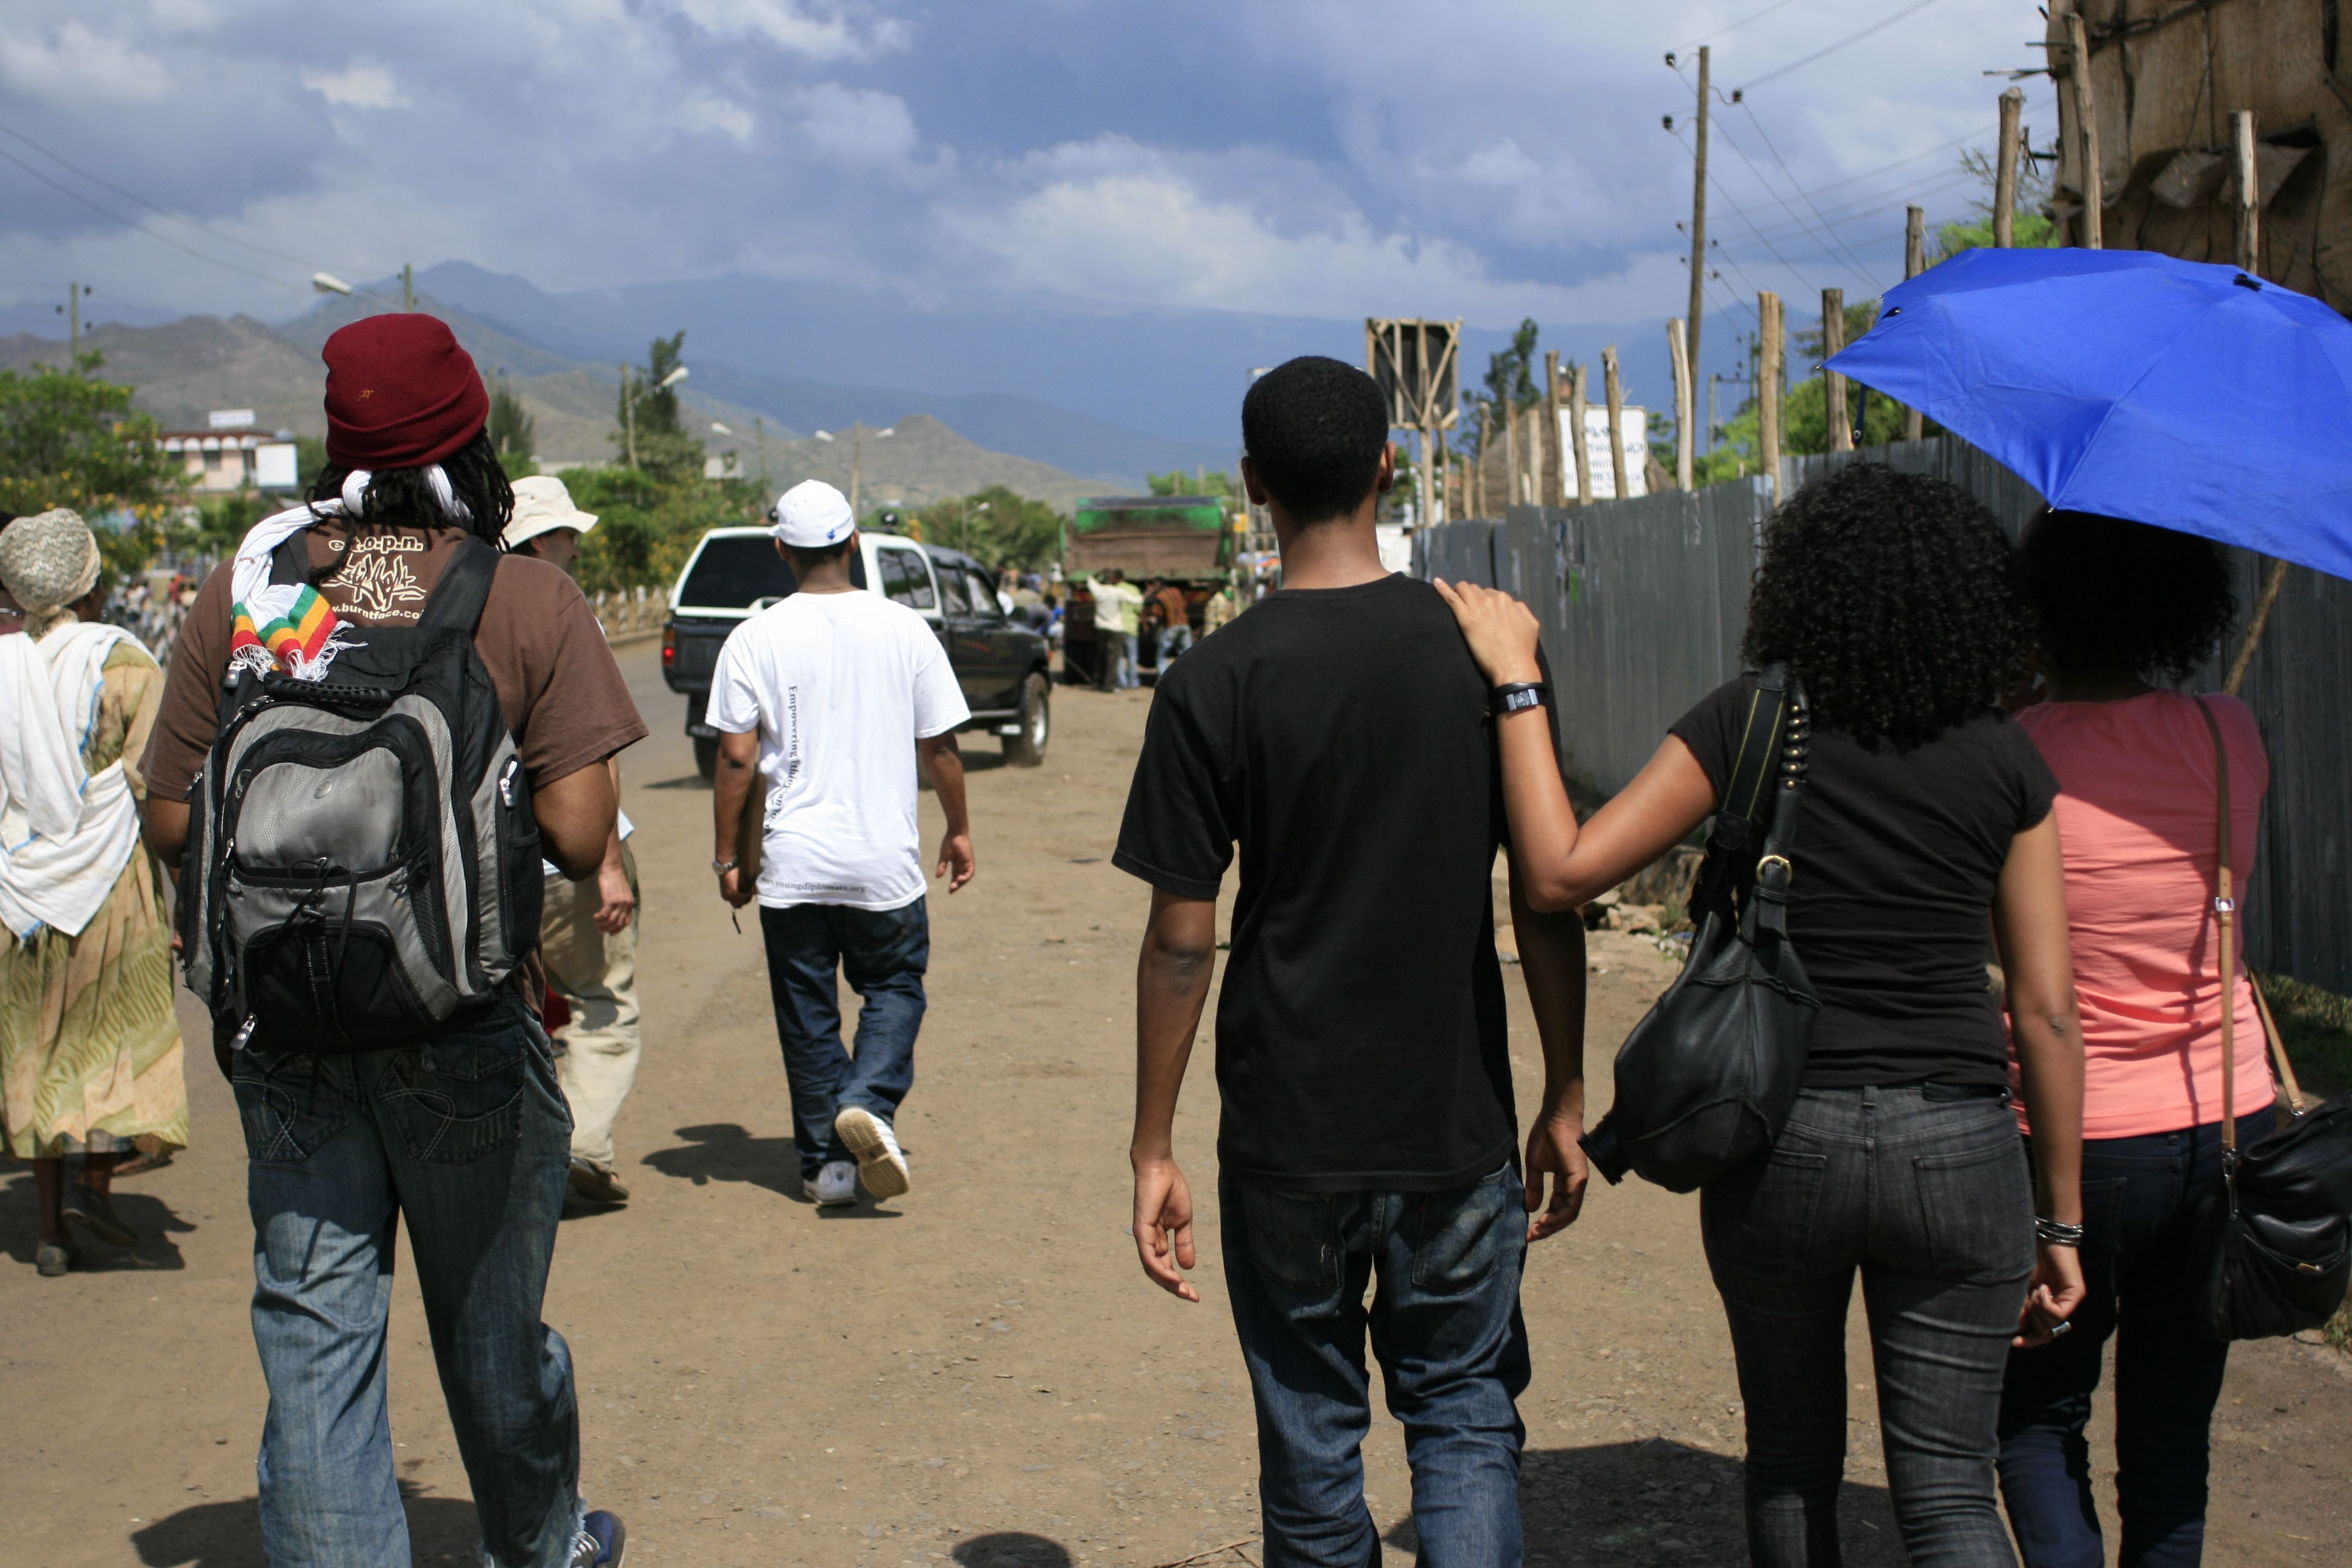 Going back to give back: Young diasporans and Ethiopian development